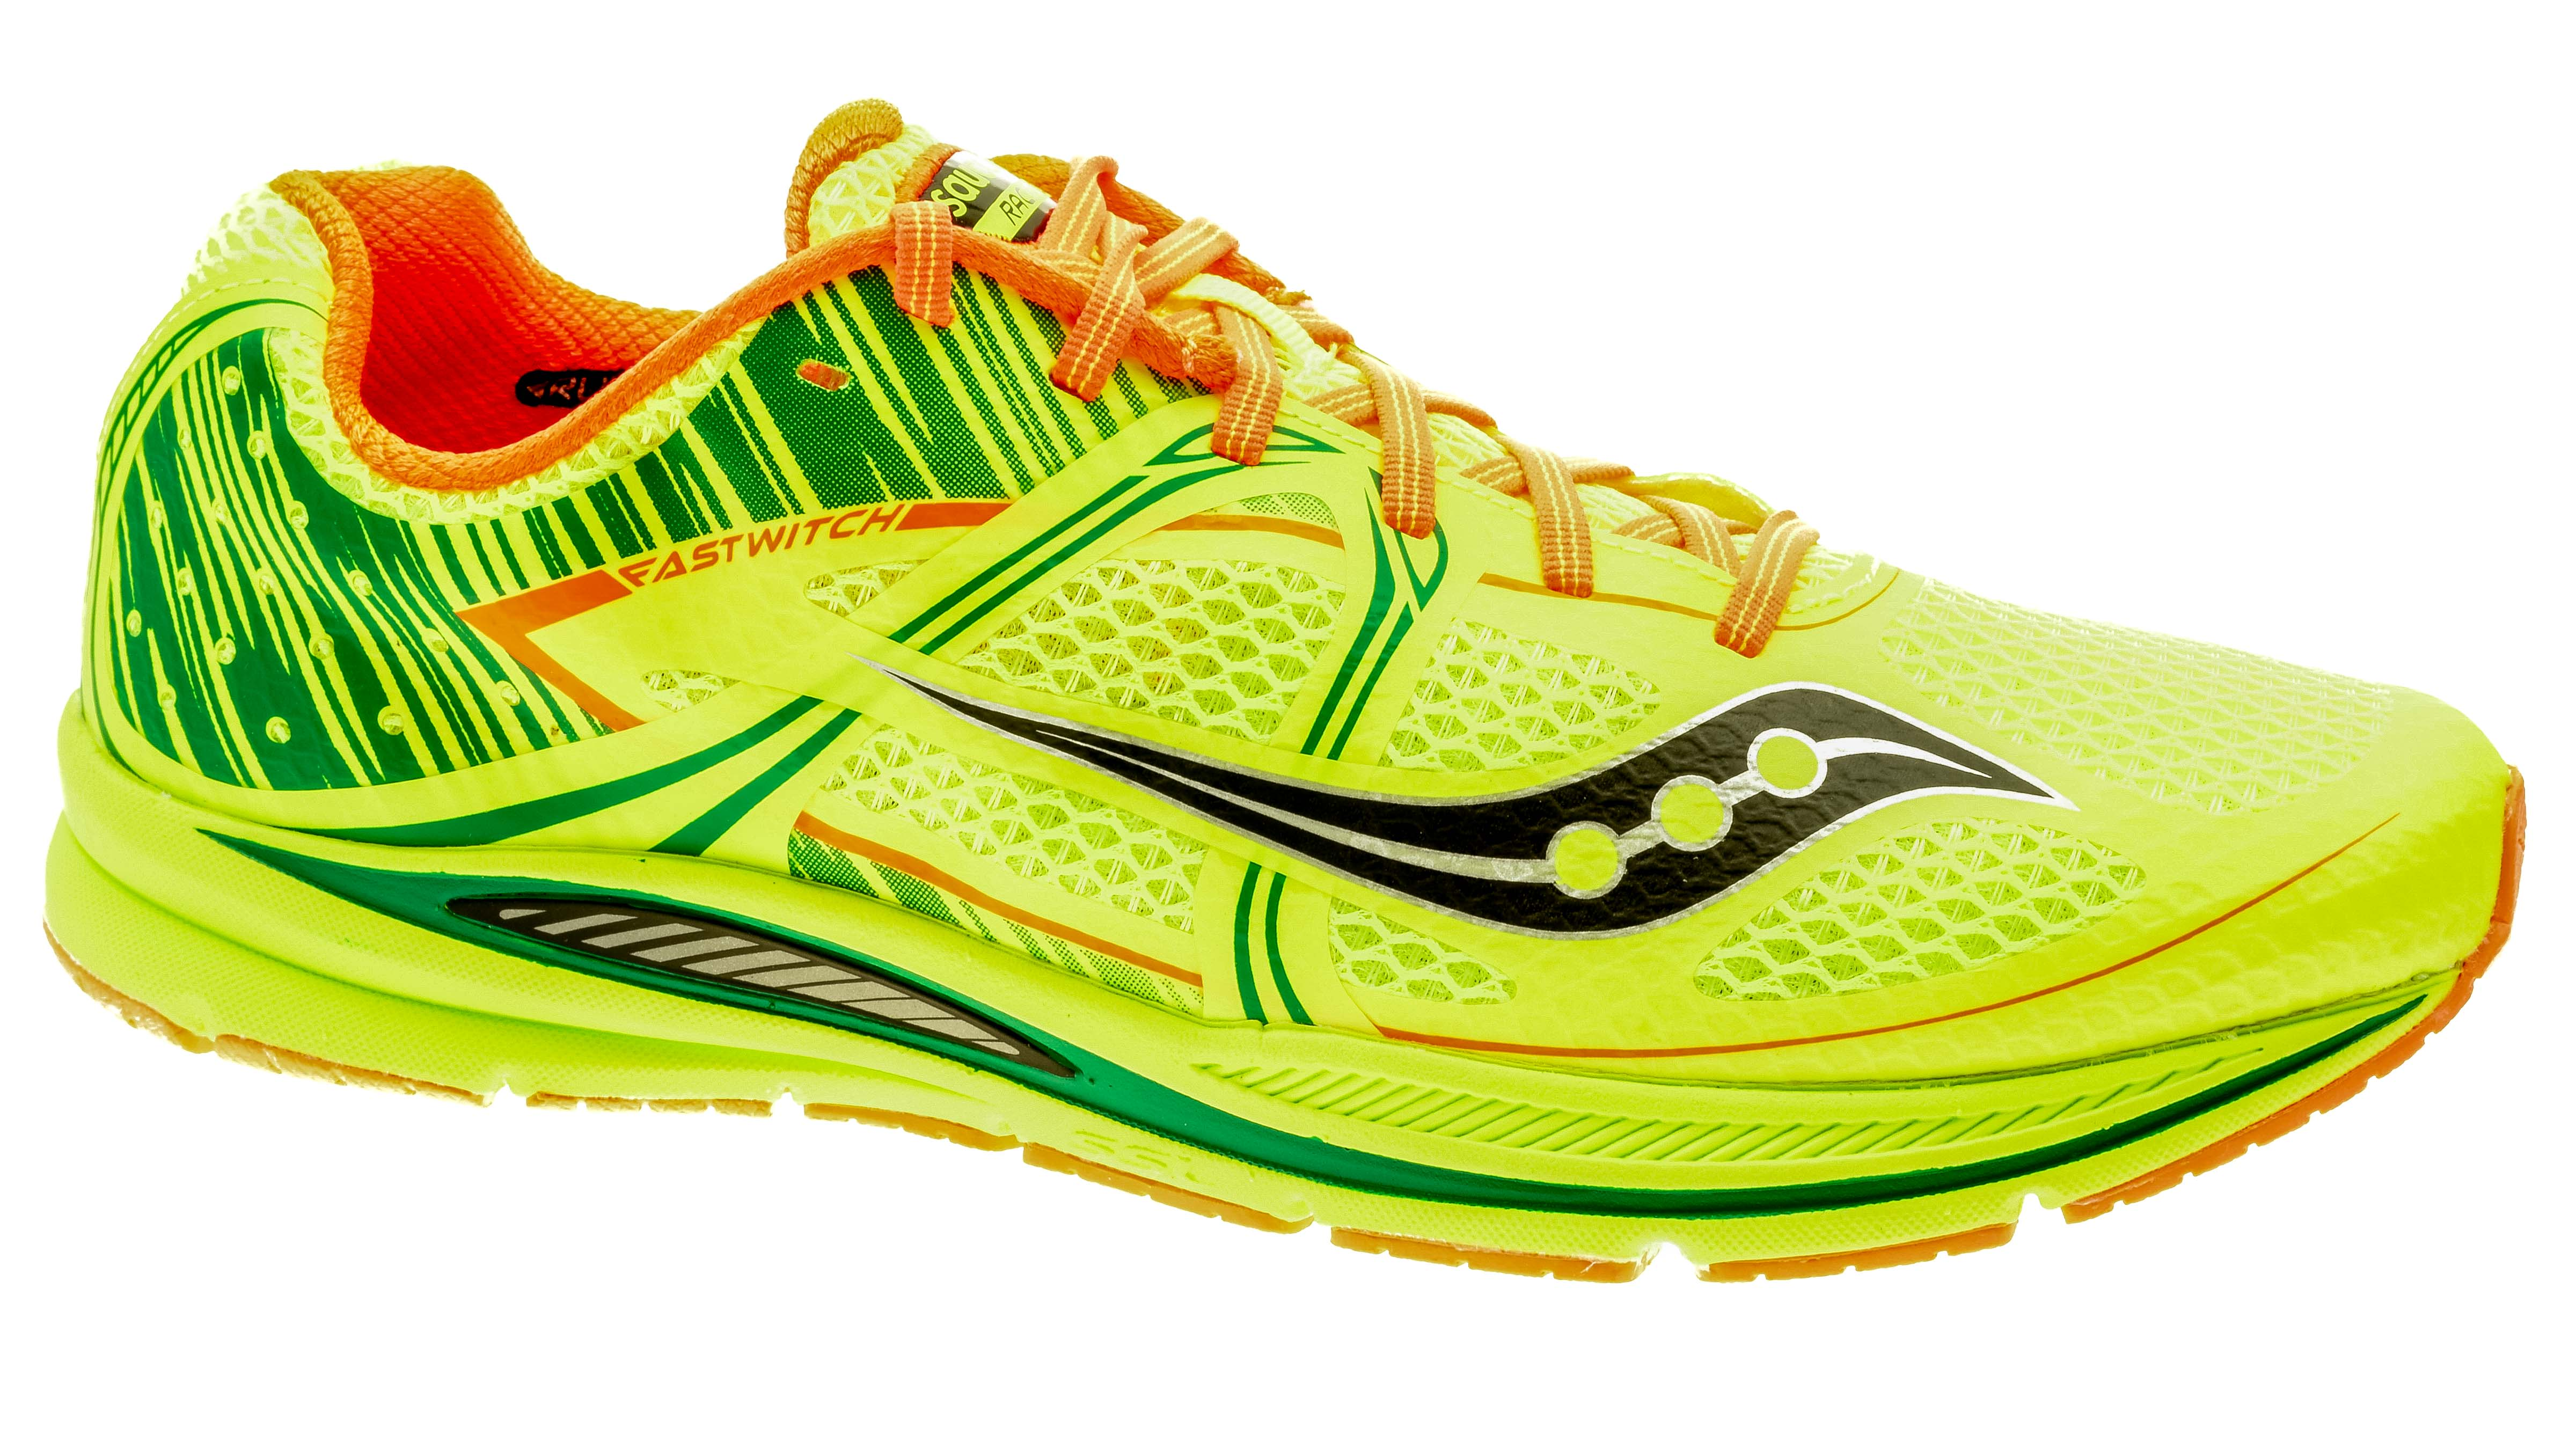 the best attitude 067db bb814 Saucony Fastwitch Racing vizipro/citron